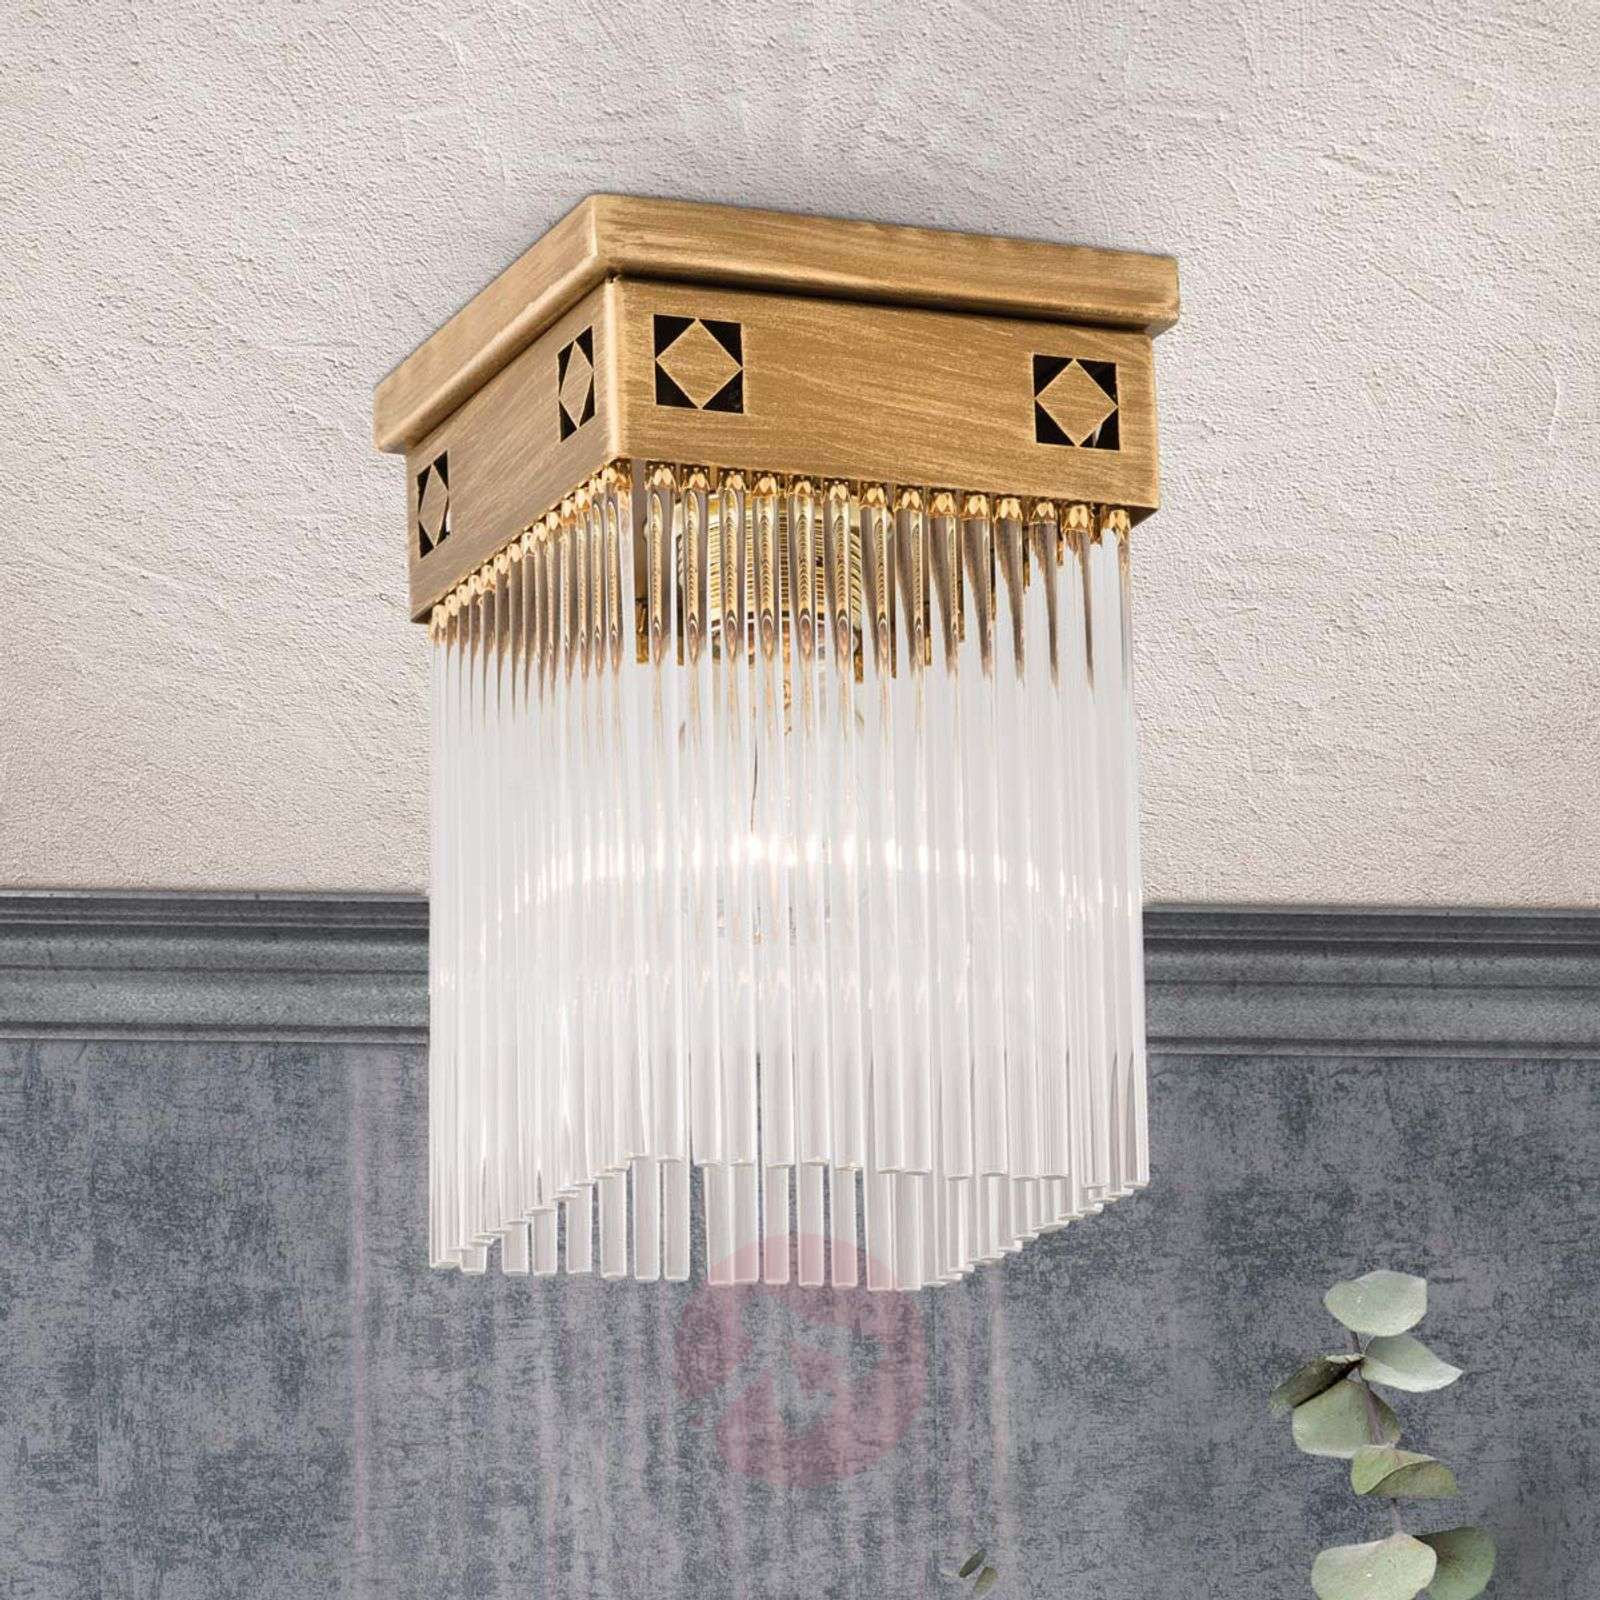 master martin chandelier wide gandm ceilings deco lighting furniture f light french lights pendant at id sale for chandeliers and art ceiling guenier